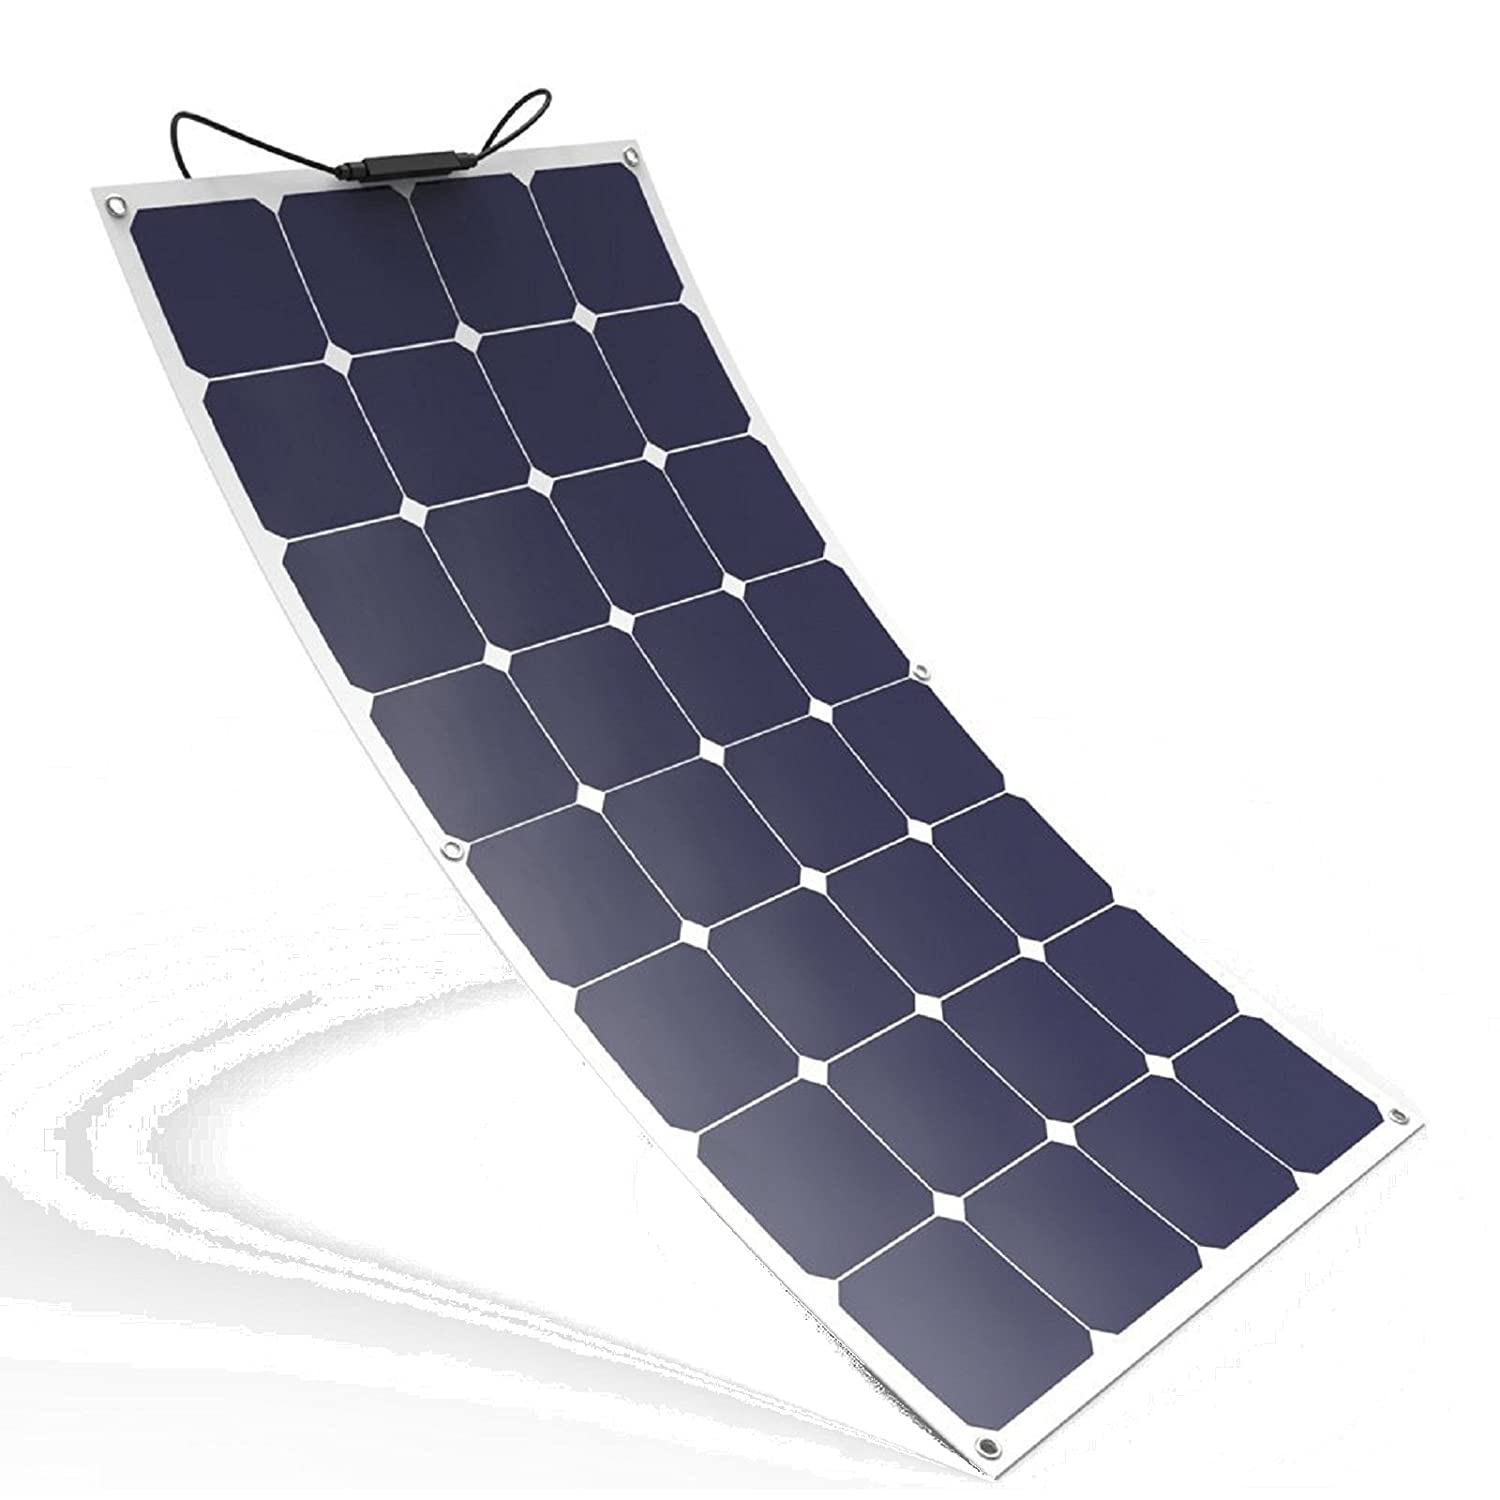 Campervan rv 100 Caravan Spark 100W Flexible Durable Solar Panel Made of Back-Contact Cells Charging kit for Motorhome Boat or Yacht